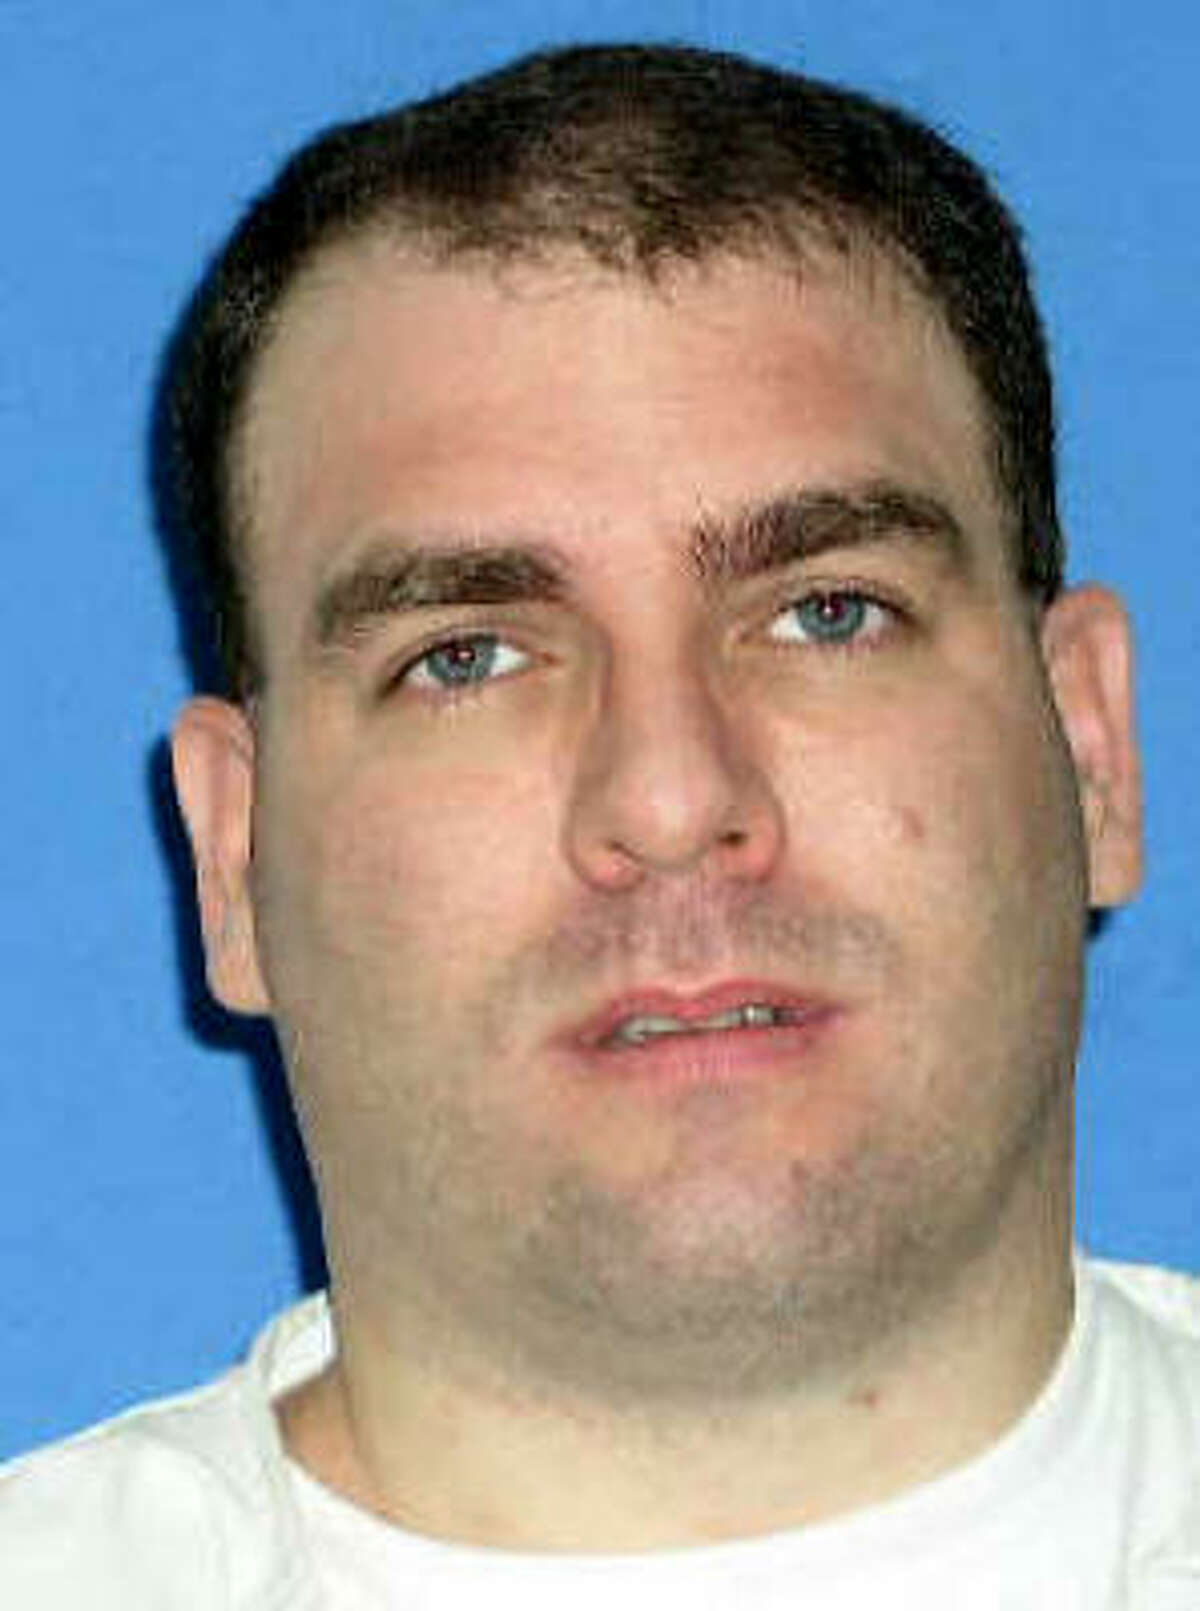 Larry Swearingen is scheduled to receive lethal injection for the 1998 strangling death of Melissa Trotter.